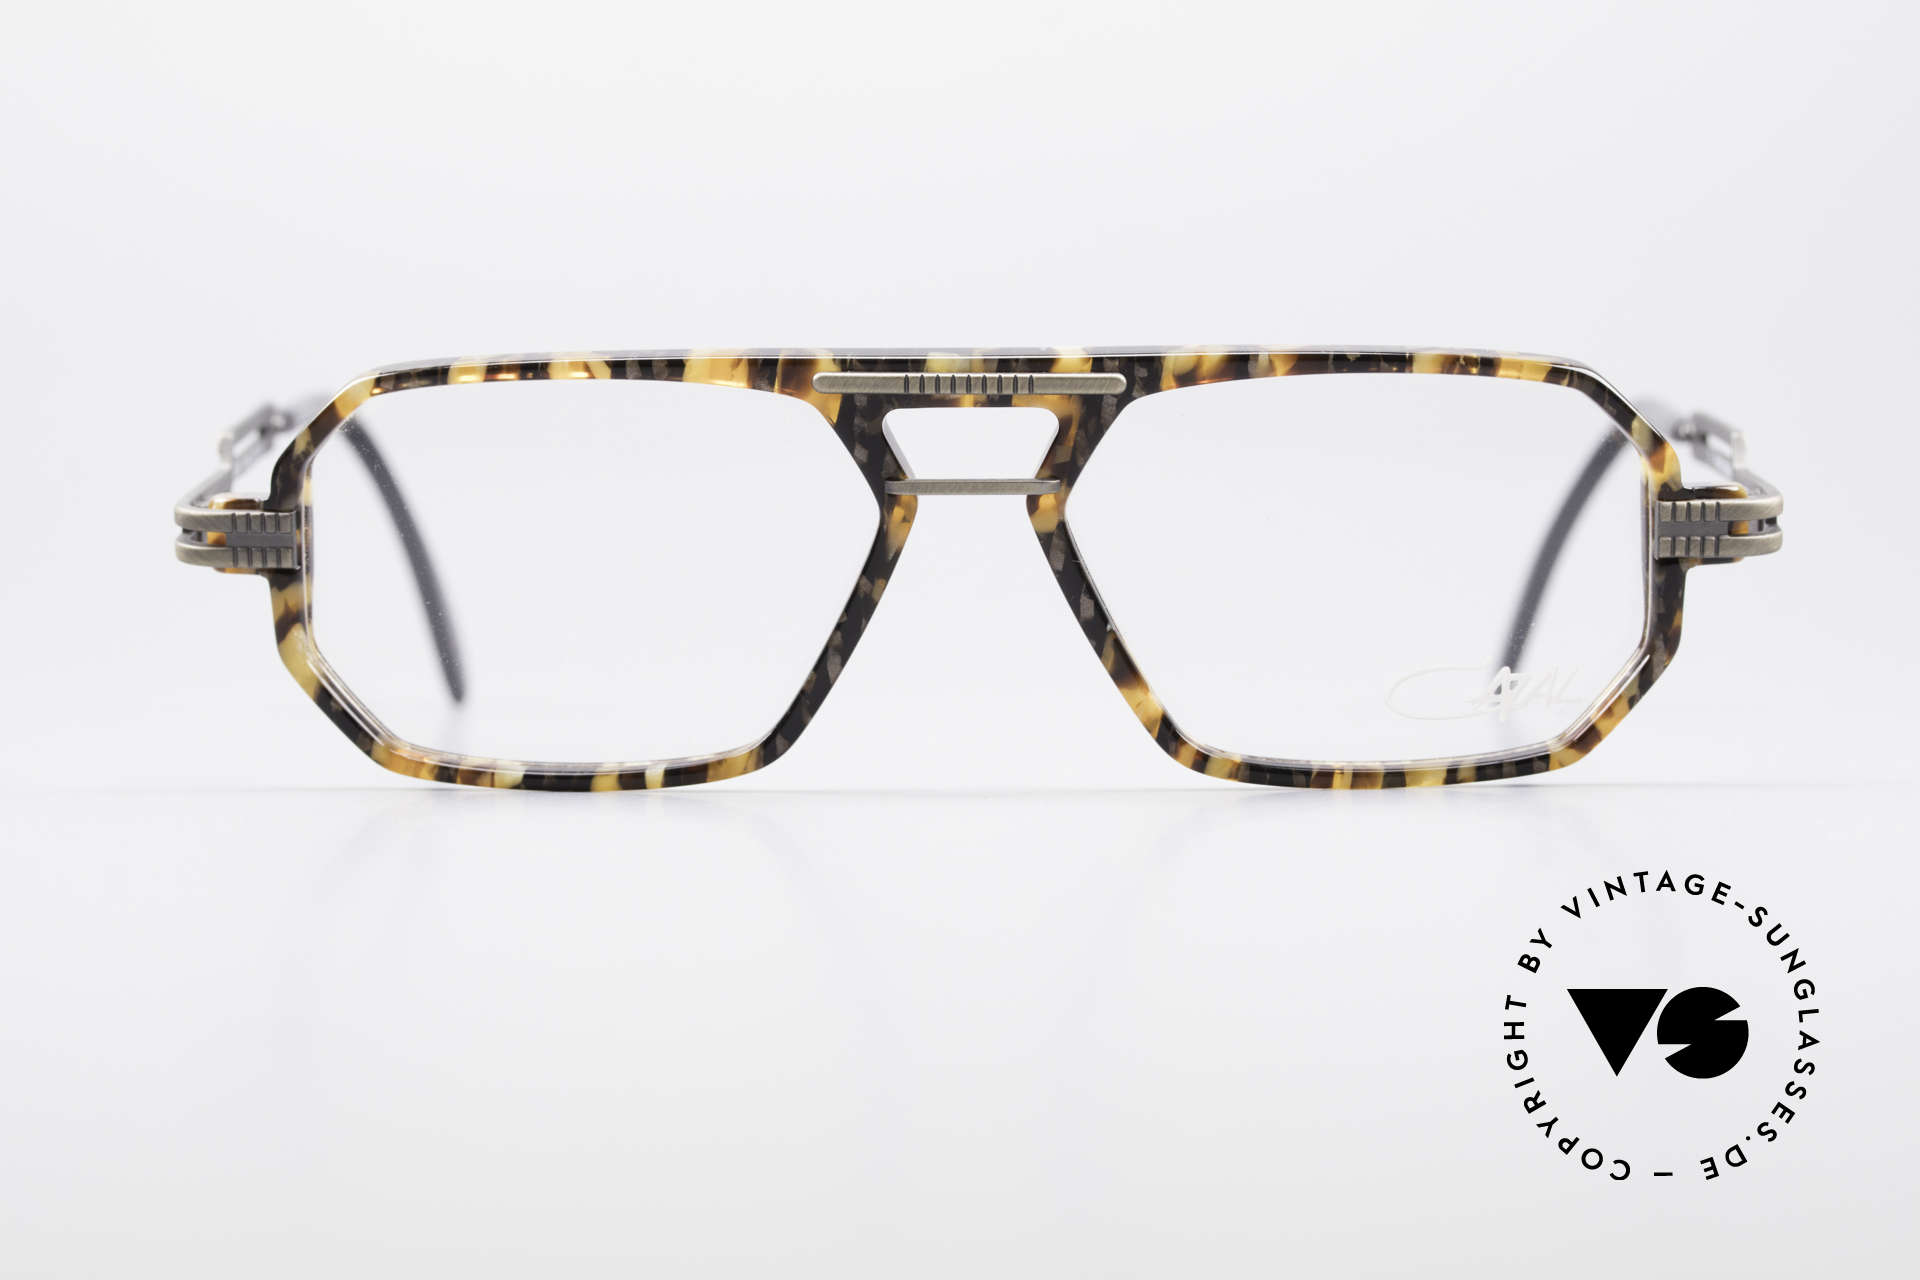 Cazal 651 Rare 90's Vintage Eyeglasses, 90's continuation of the legendary 600 series; vintage!, Made for Men